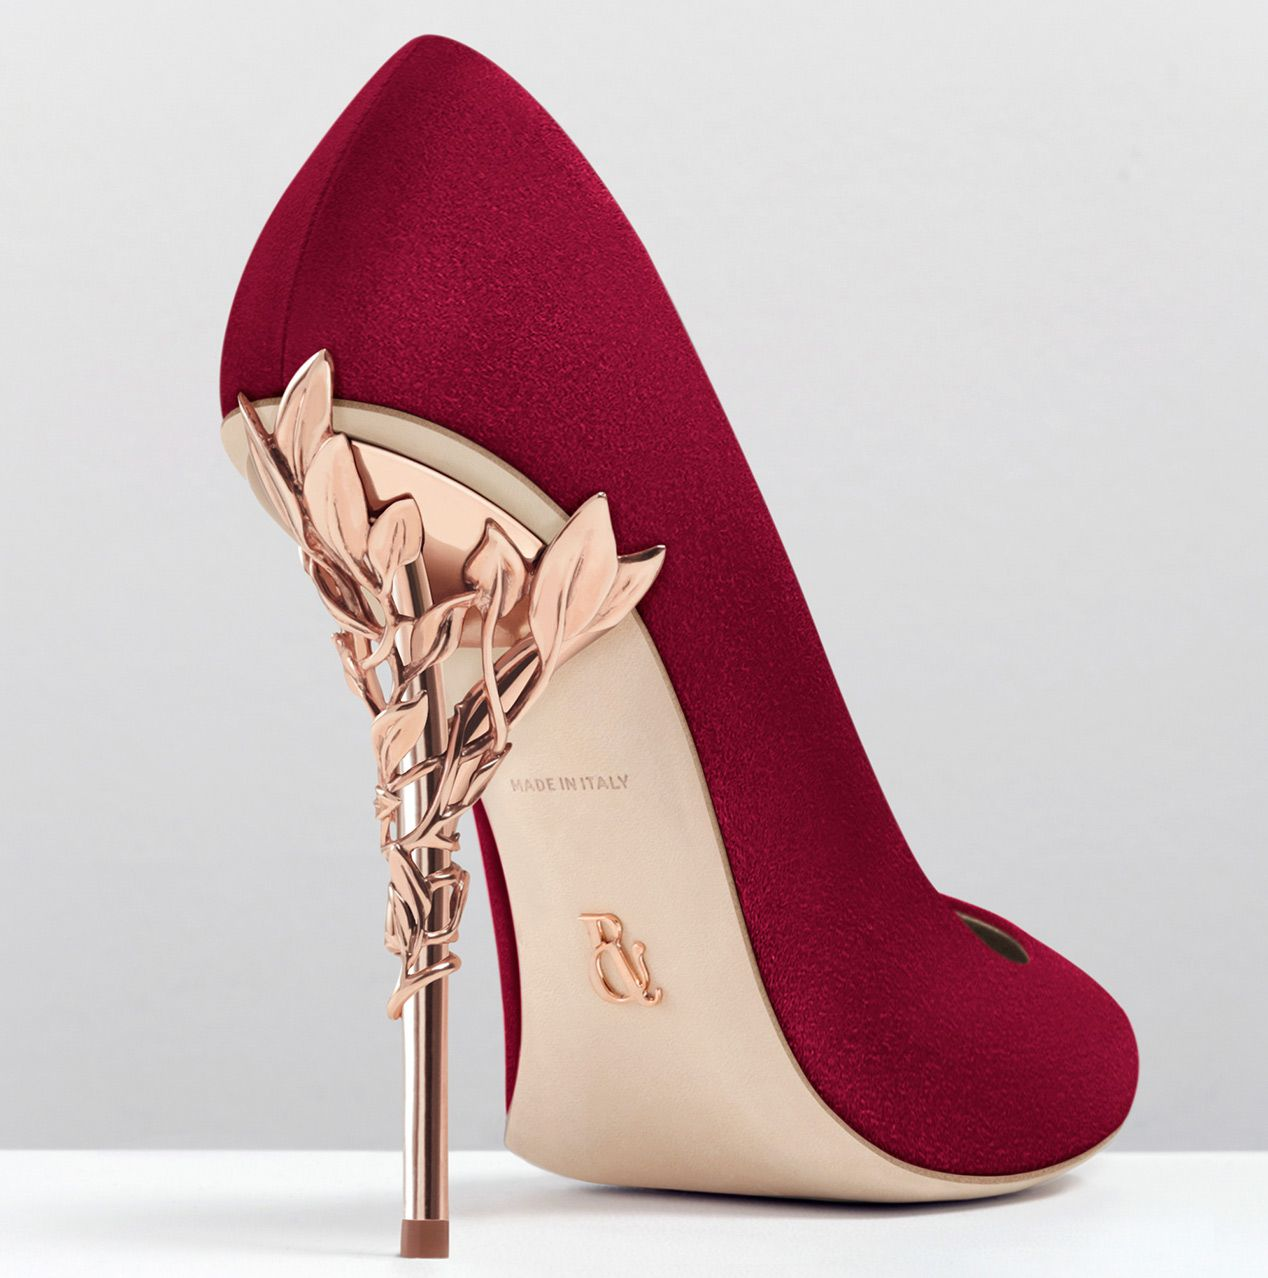 Fandango colour Suede Rose gold colour leaves 12cm heel Leather outsole  Made in Italy Red Prom 5e689d1f00